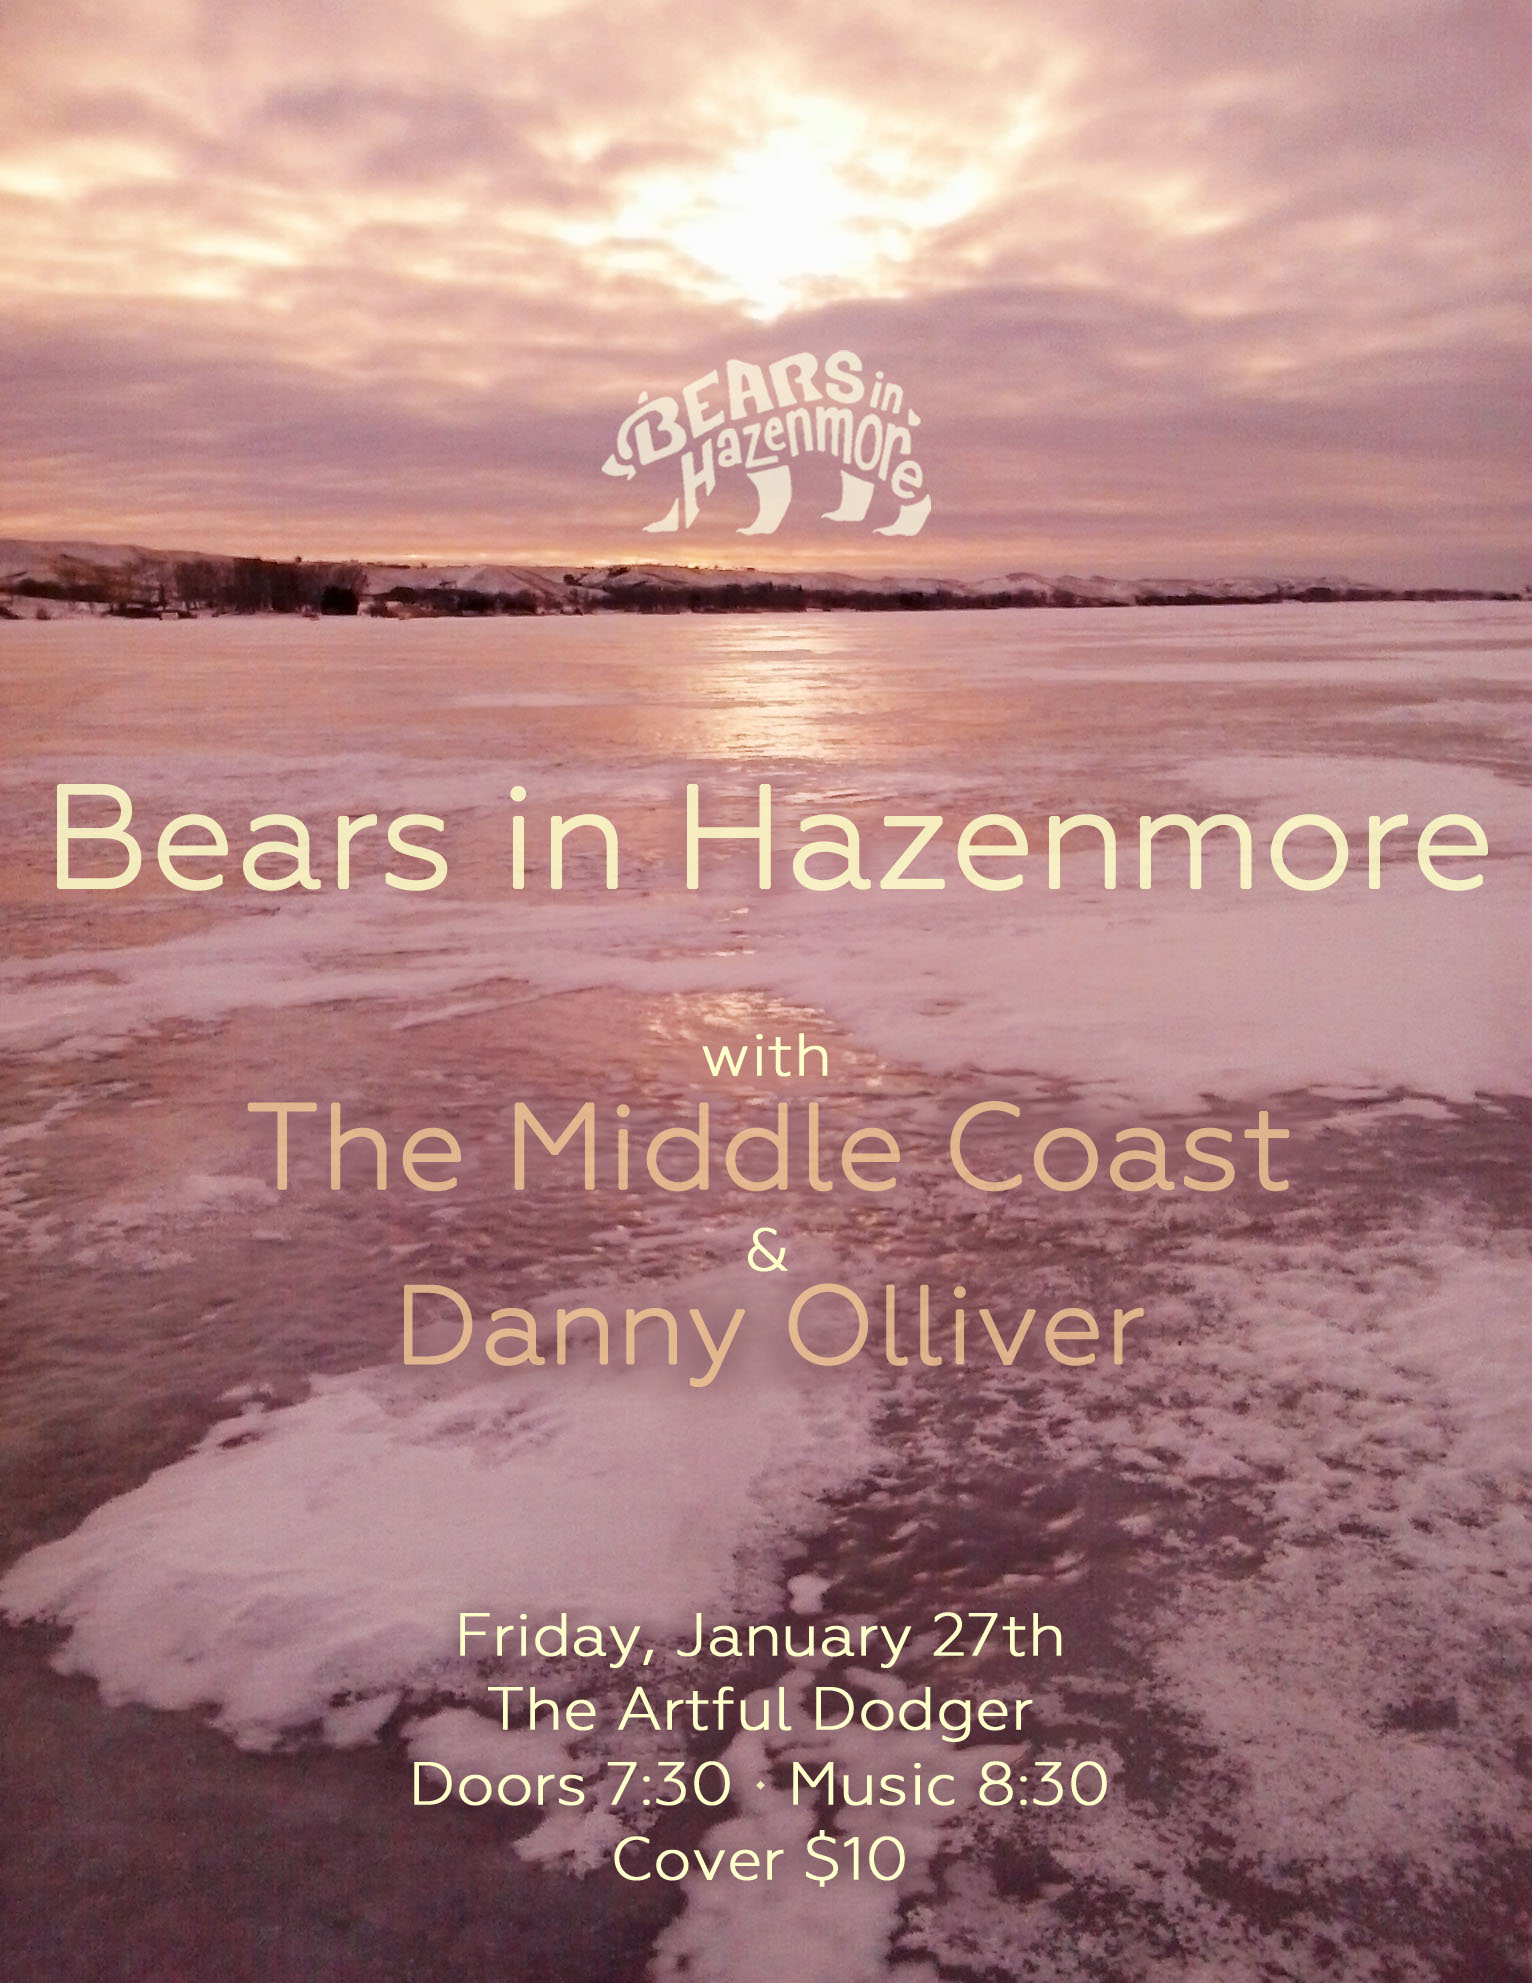 Bears in Hazenmore Poster, Jan 2017